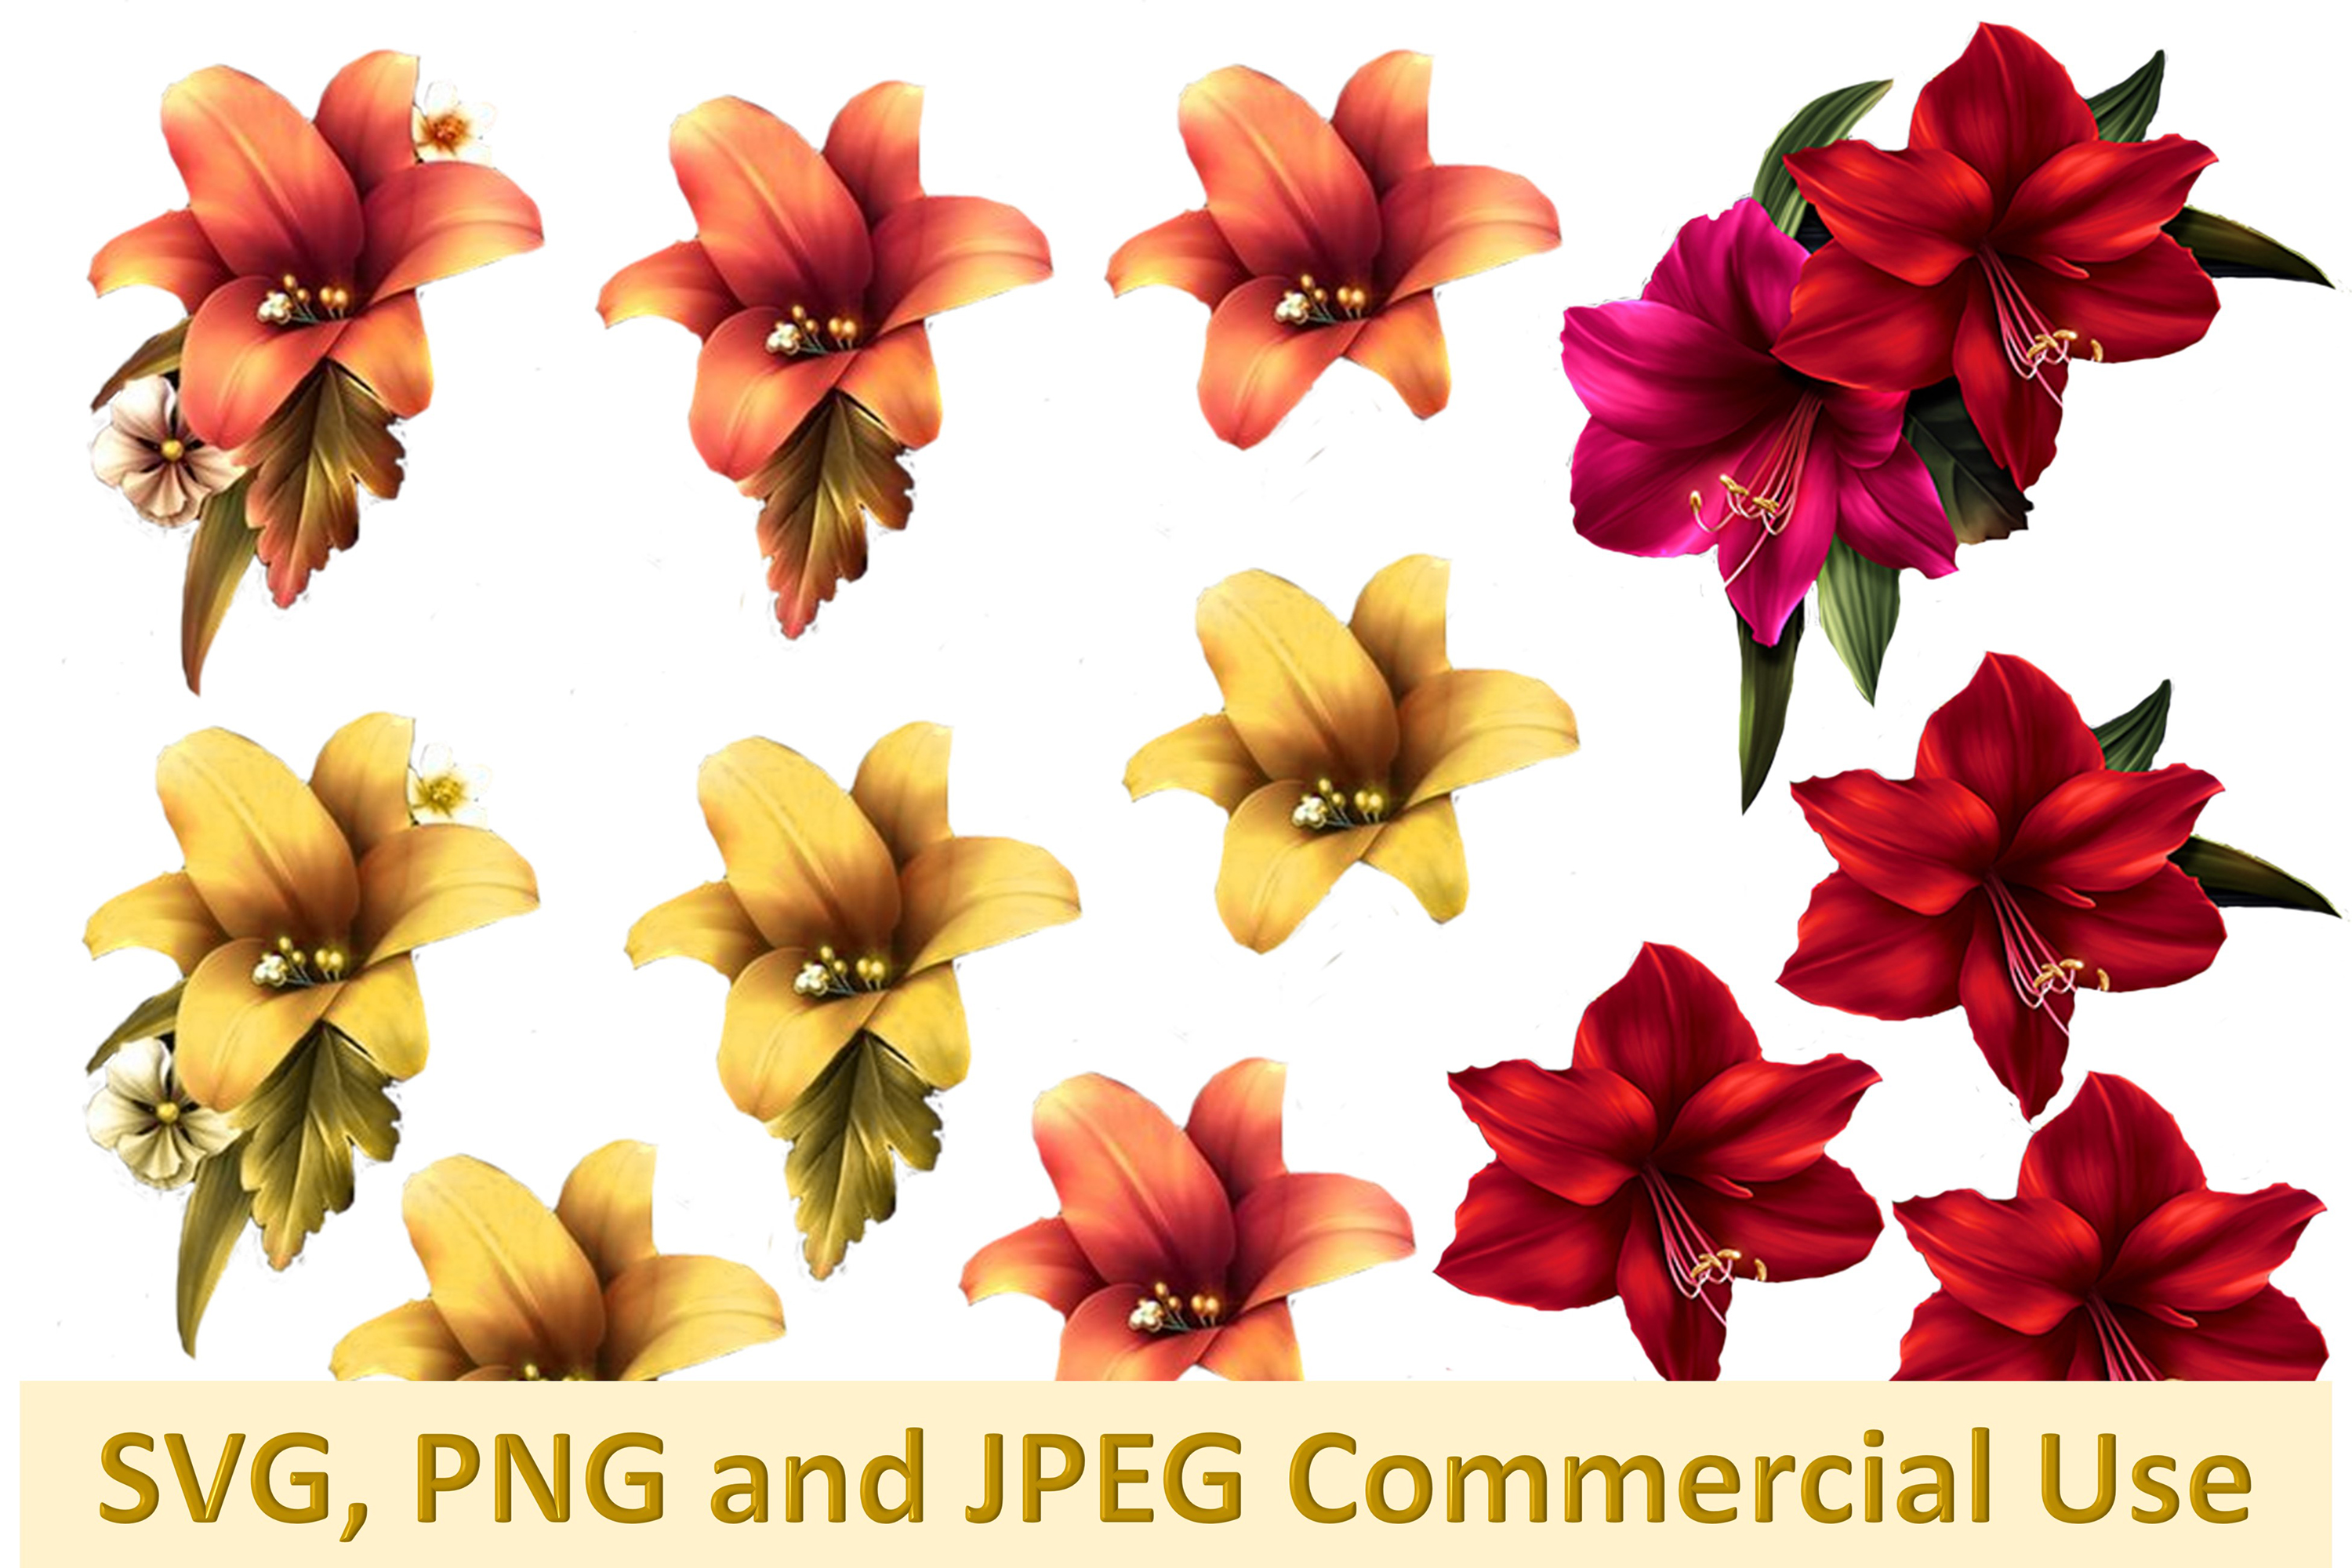 SVG, PNG and JPEG Autumn Lilies Collage Commercial Use example image 1